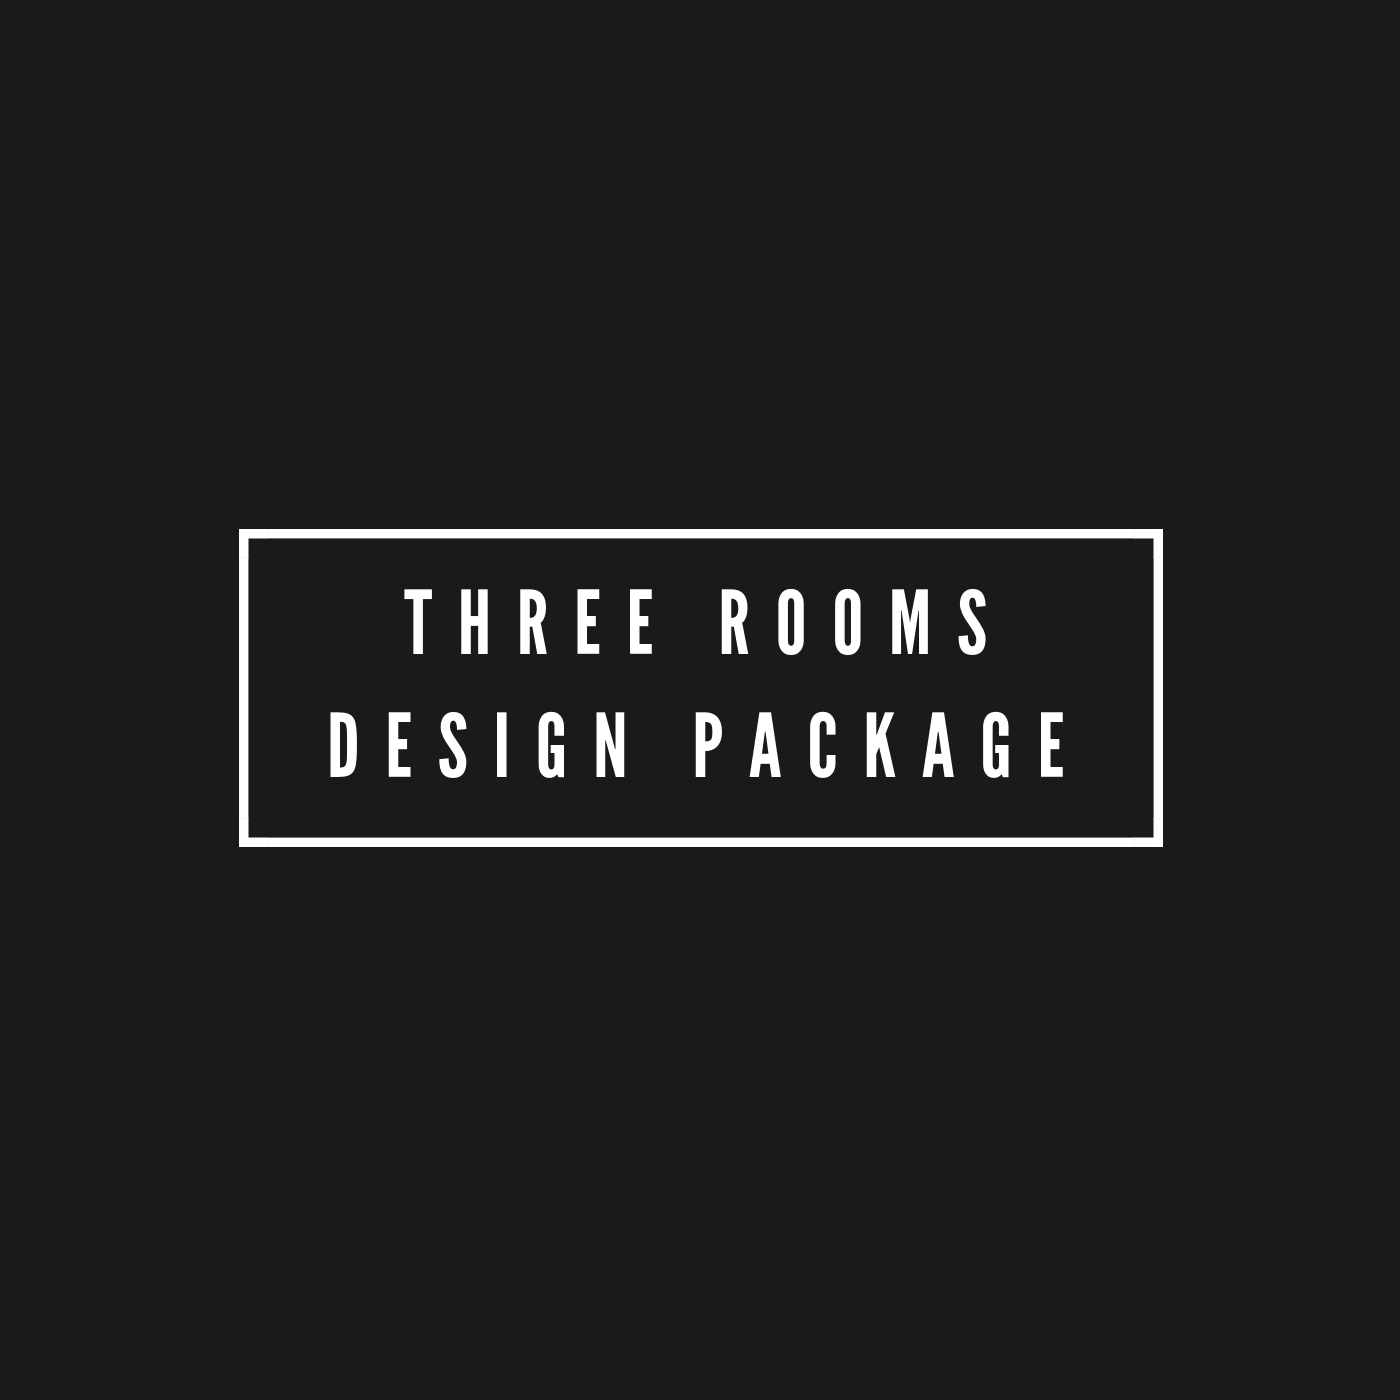 three room design package.jpg